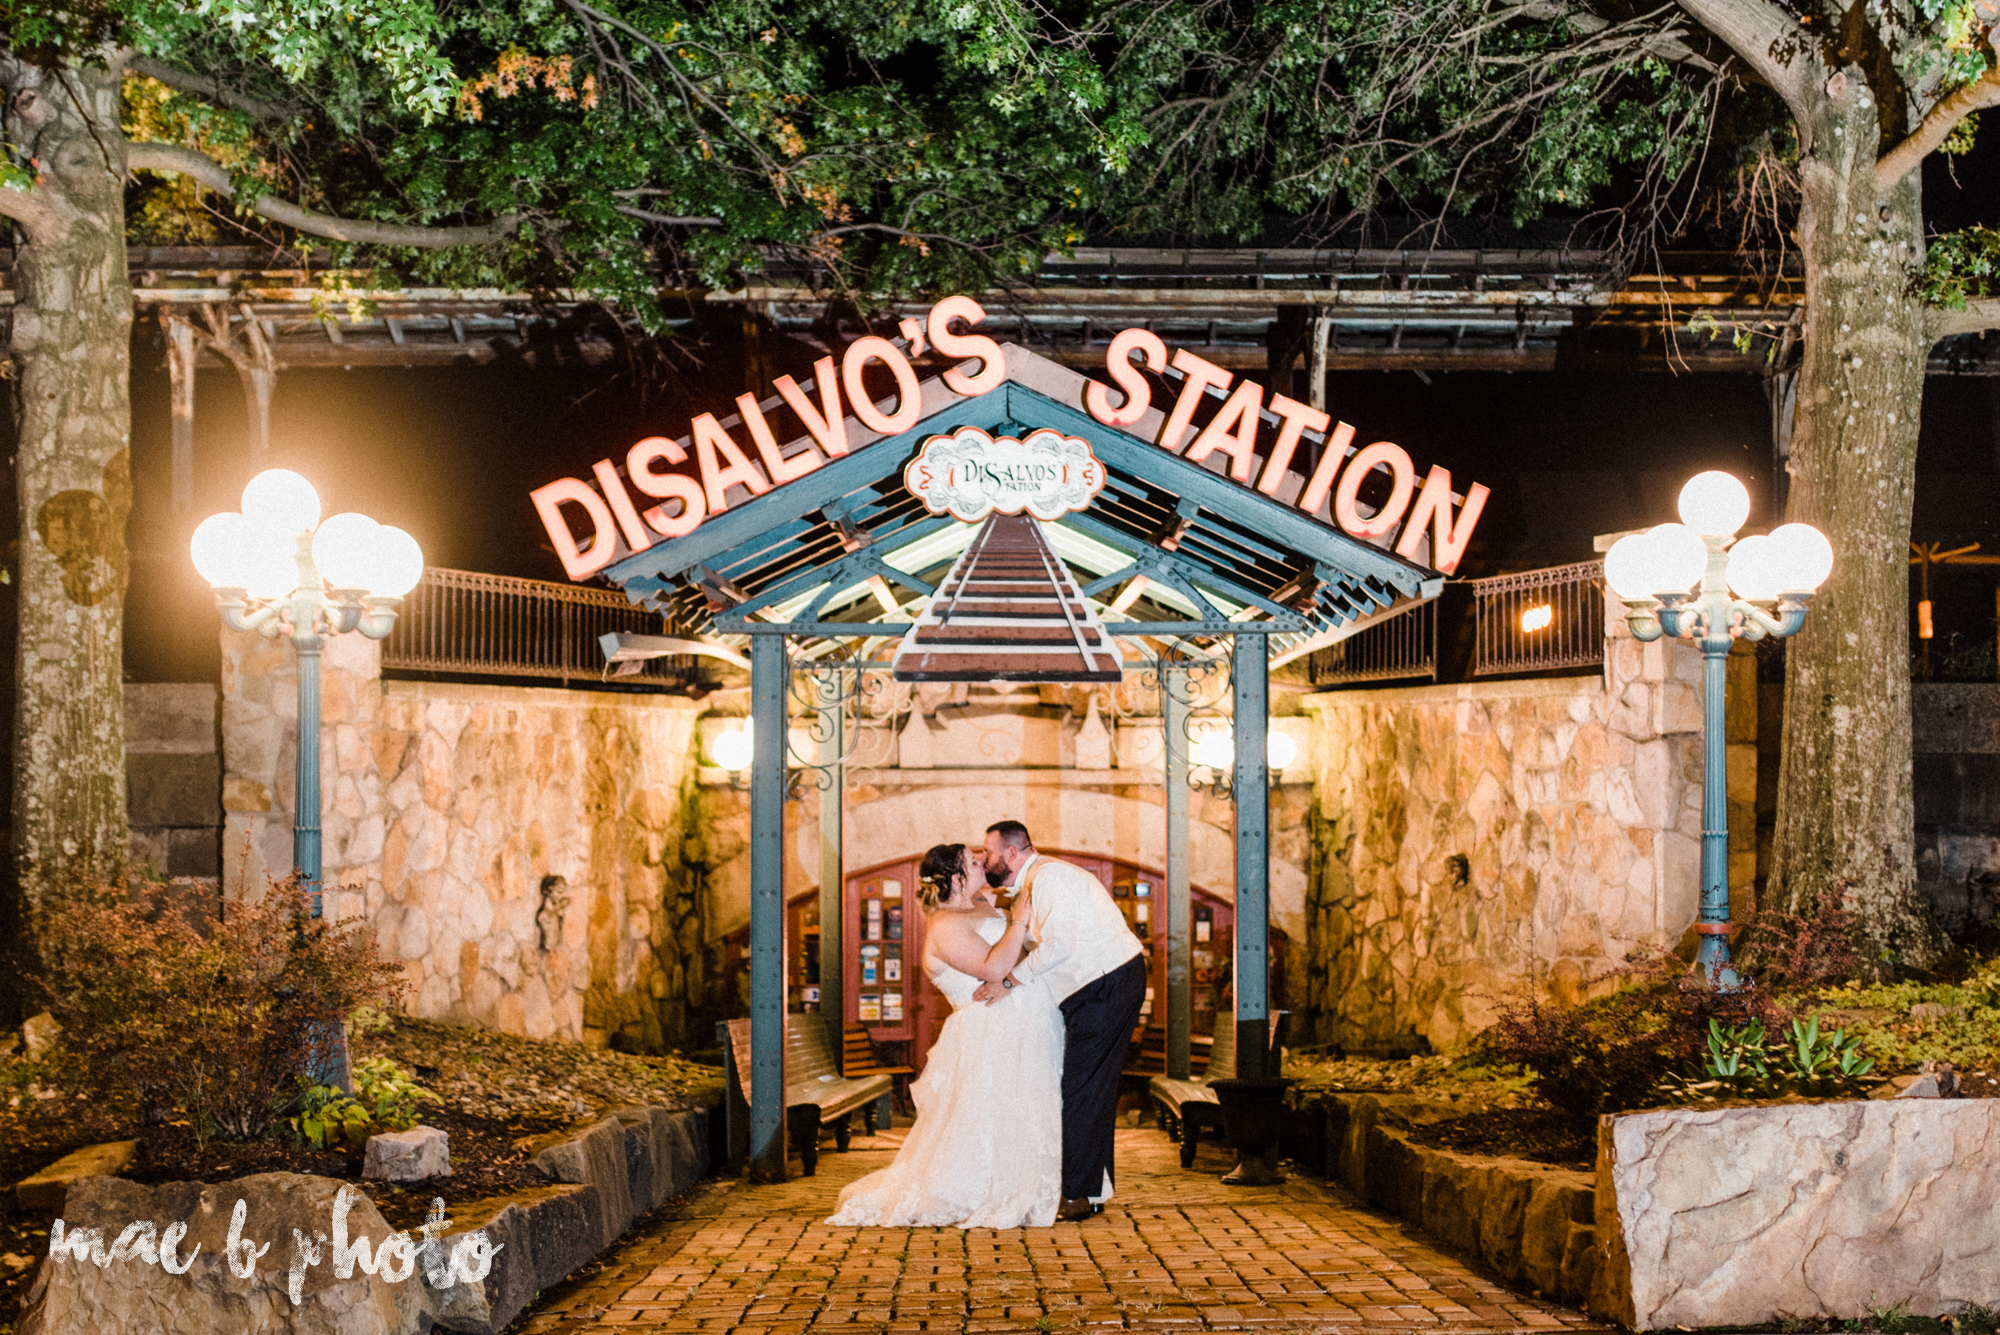 Kristina and ryan's personal vintage glam fall wedding at disalvo's station restaurant and the arnold palmer latrobe country club in latrobe, pa photographed by youngstown wedding photographer mae b photo-88.jpg